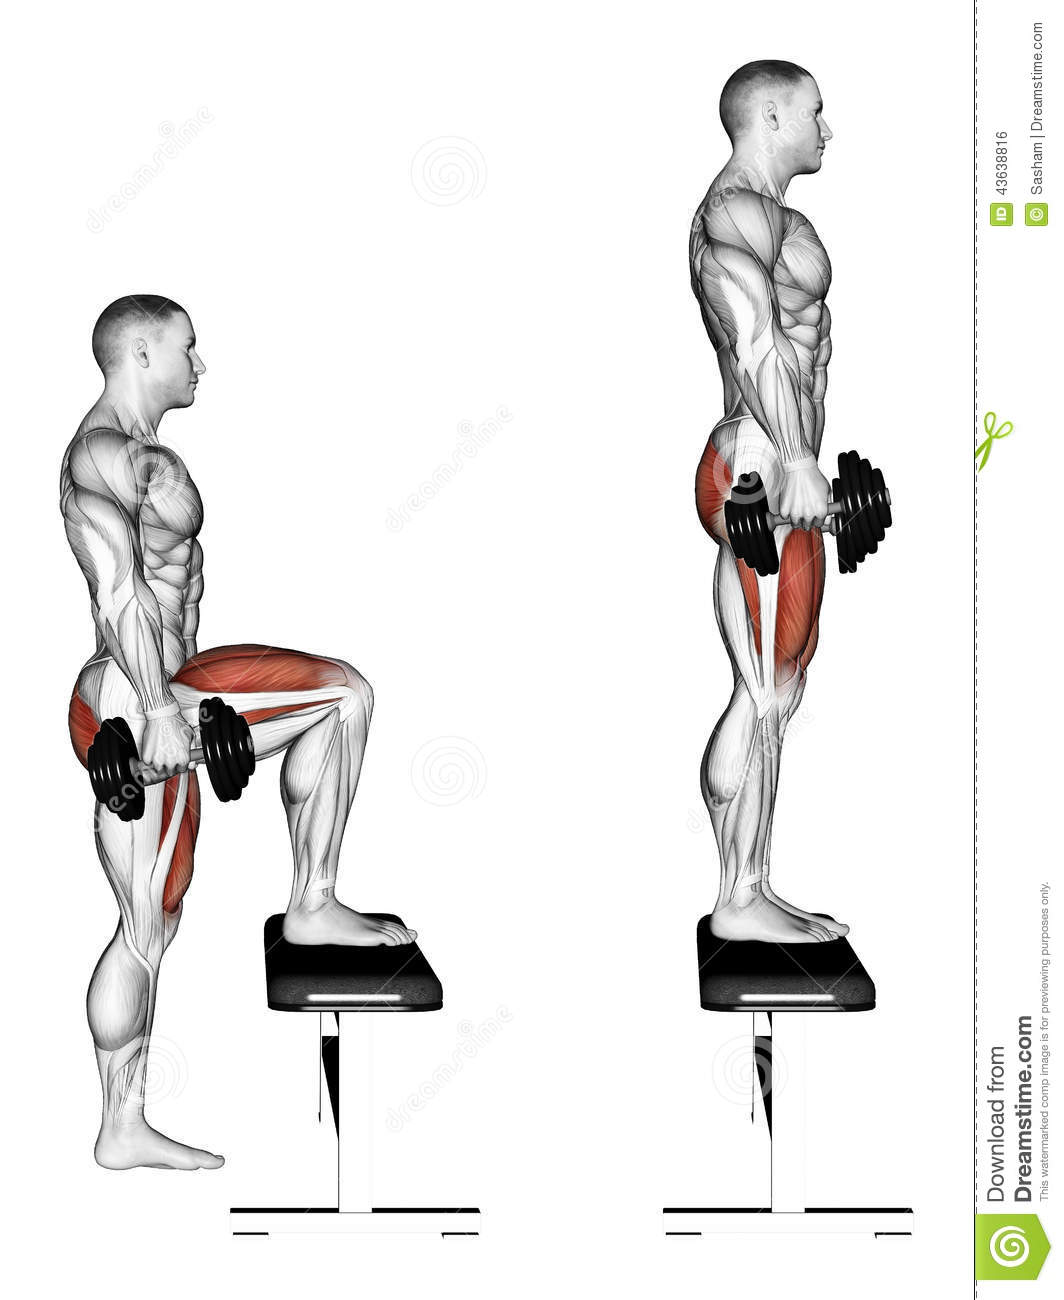 Knee On Bench Dumbbell The Best 28 Images Of Knee On Bench Dumbbell Seated